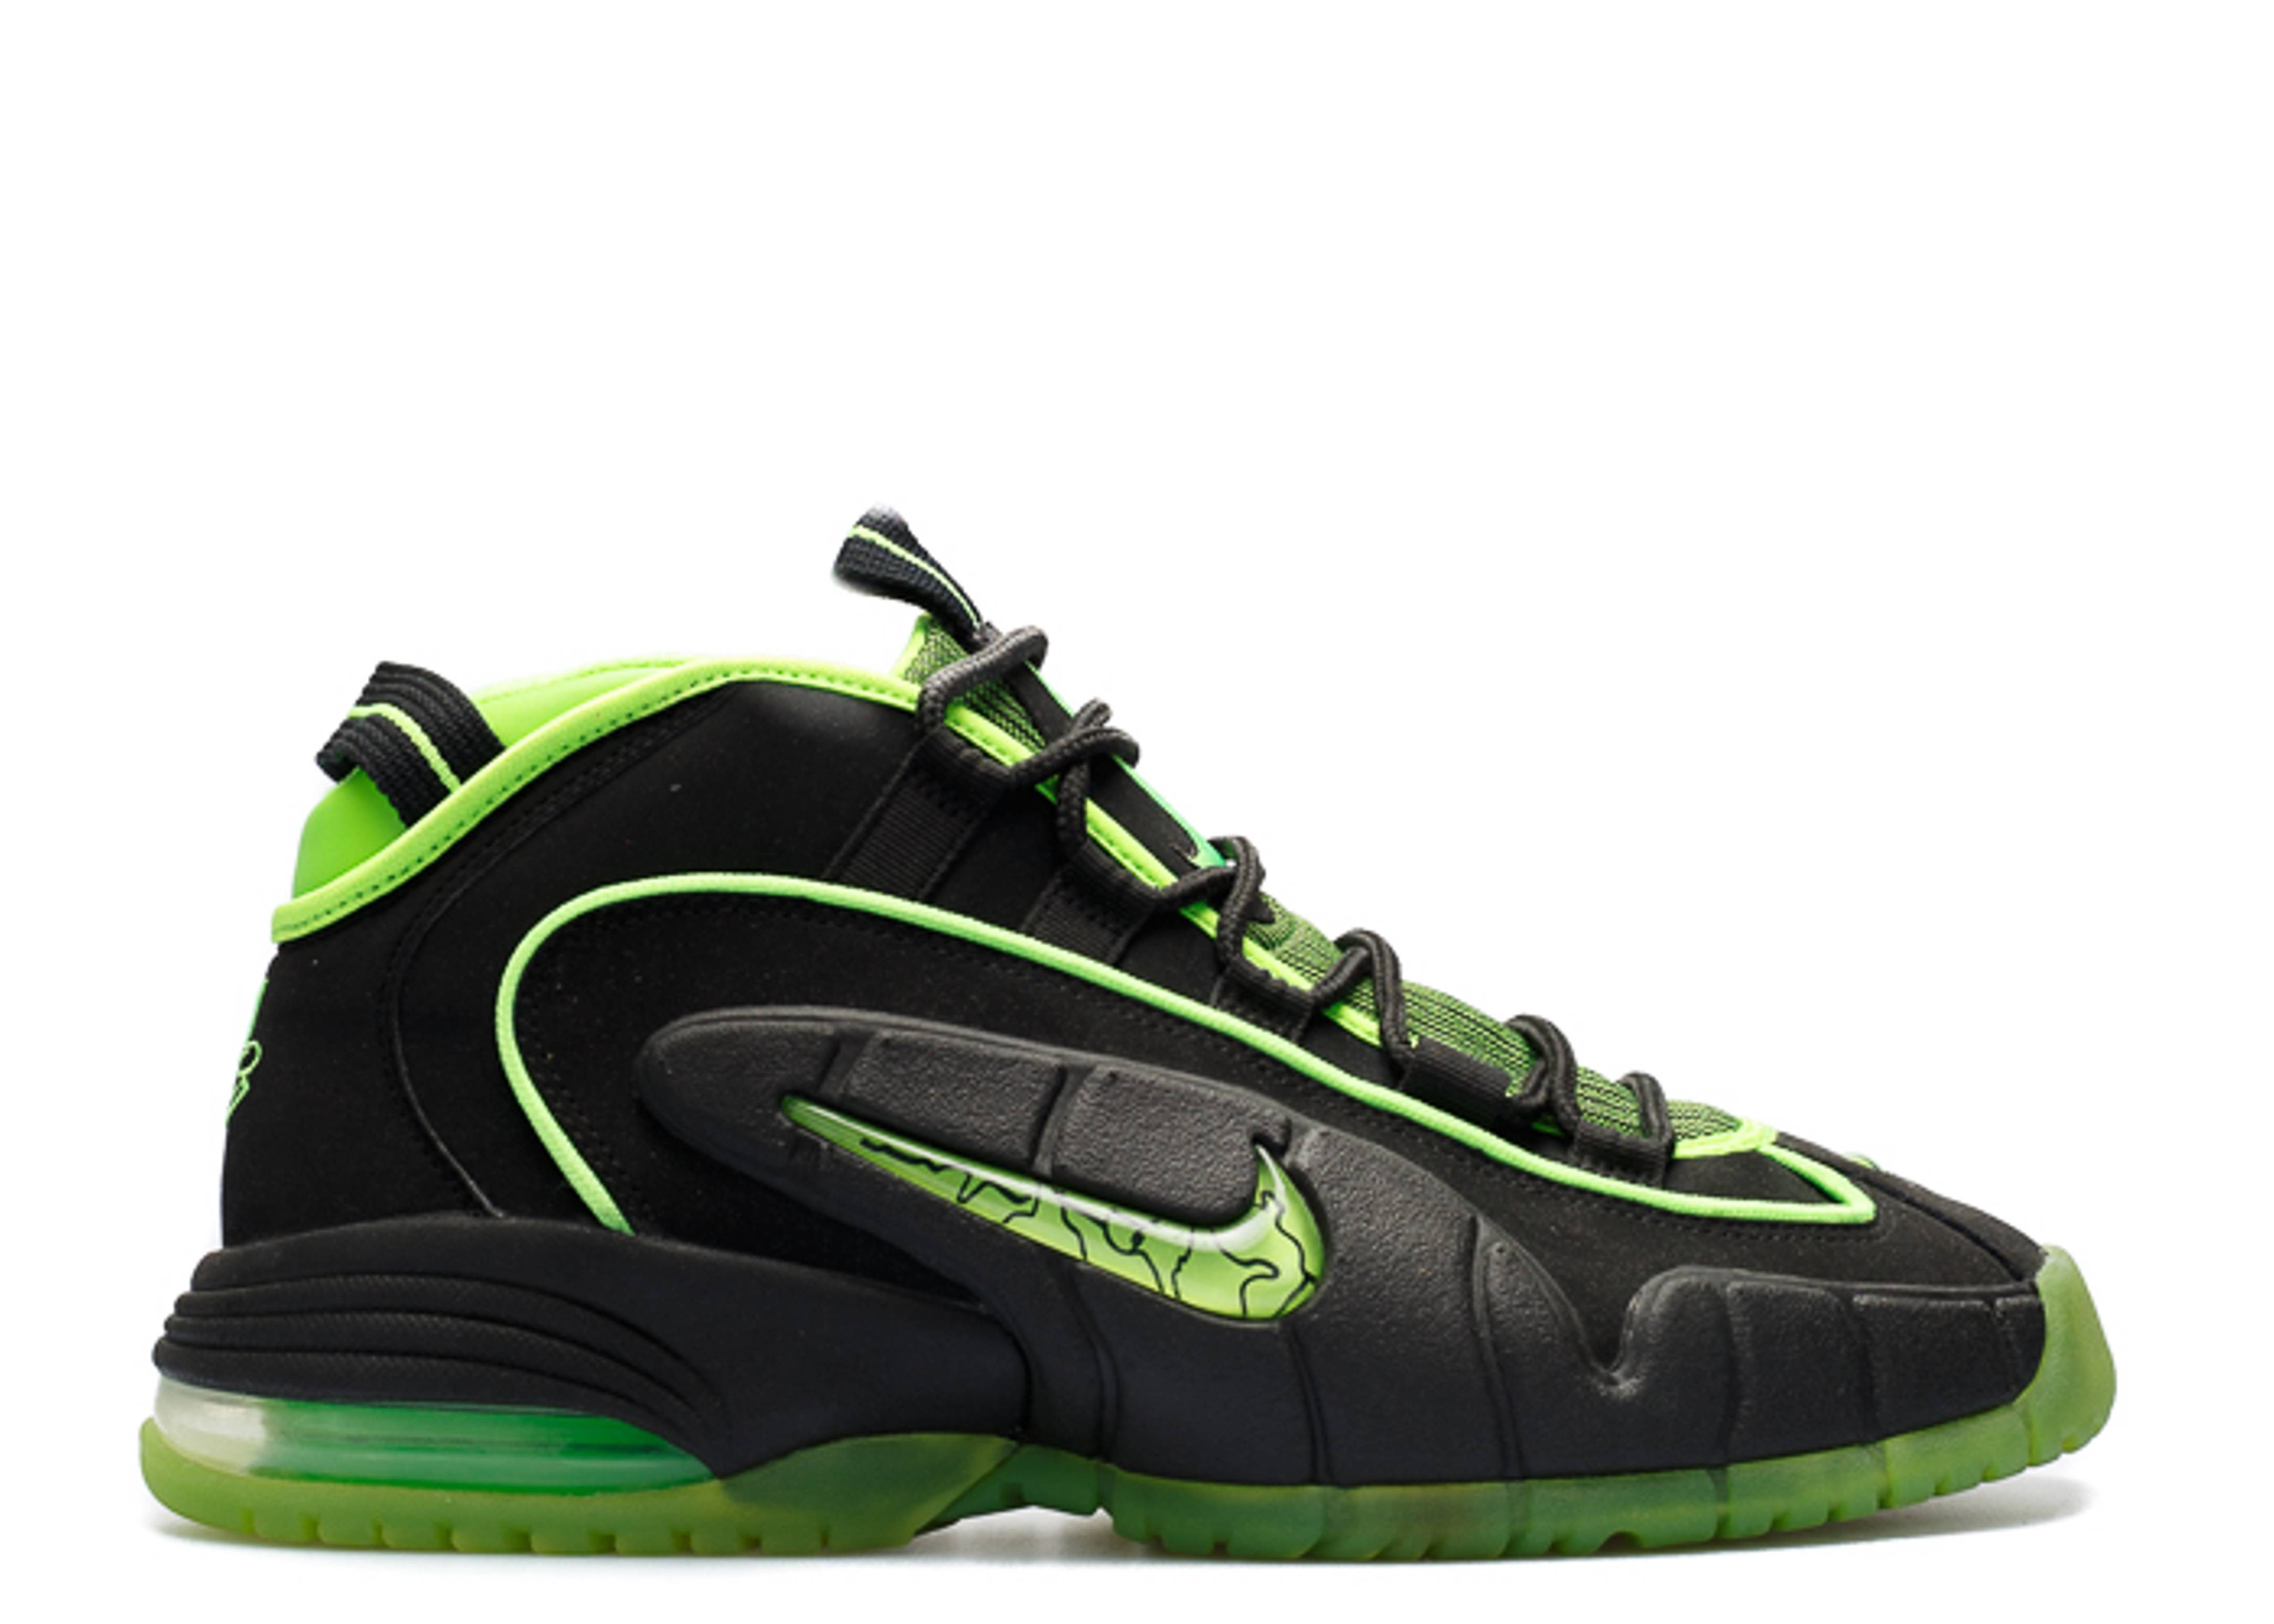 NIKE AIR MAX PENNY 05 HOH 438793 033 blackelectric green Size 14 | eBay